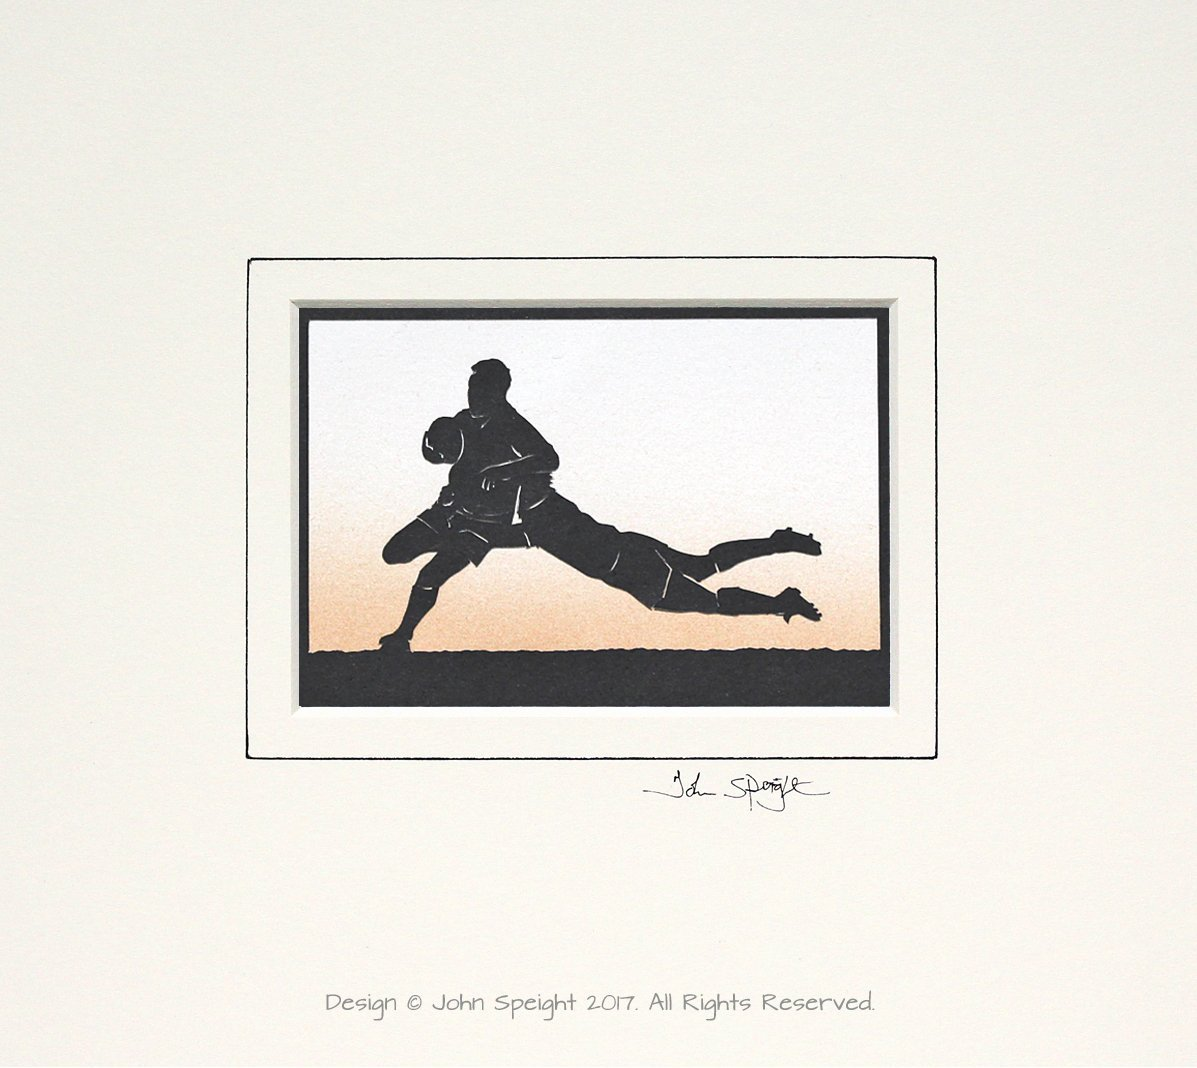 Rugby Original Signed Hand Cut Silhouette Papercut Art by John Speight - Gift for Him